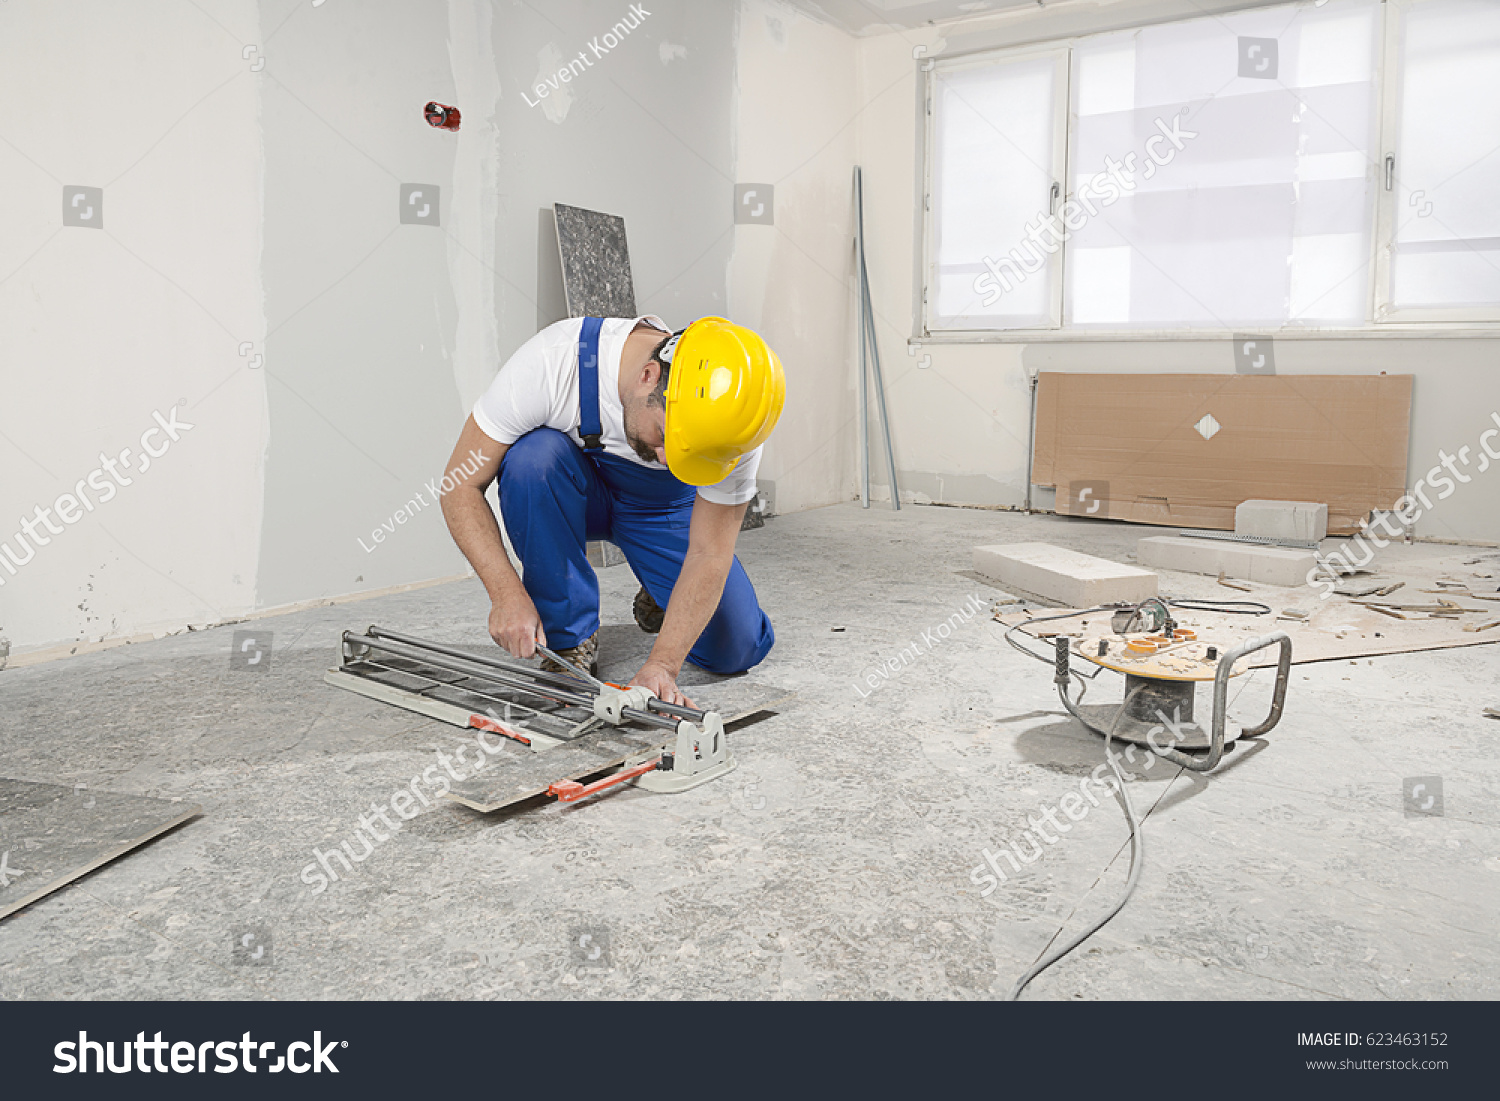 Construction worker wearing bib overalls hard stock photo construction worker wearing bib overalls and hard hat cutting ceramic tiles using ceramic cutter dailygadgetfo Images